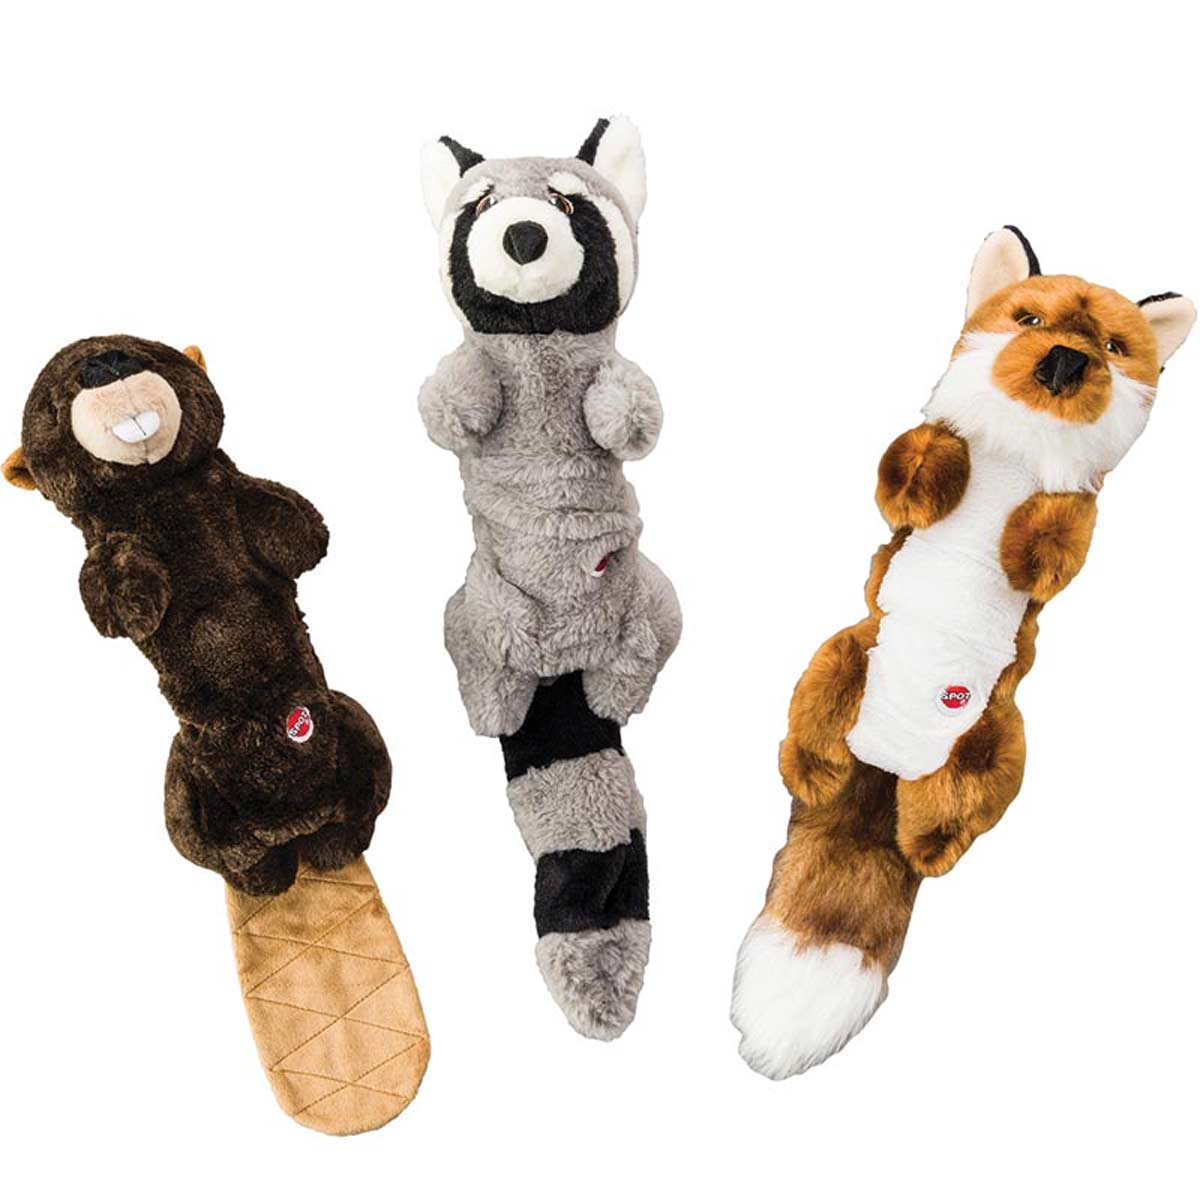 18 inch Dog Toys - Stretch and Squeak Buds Assorted - Beaver, Raccoon or Fox